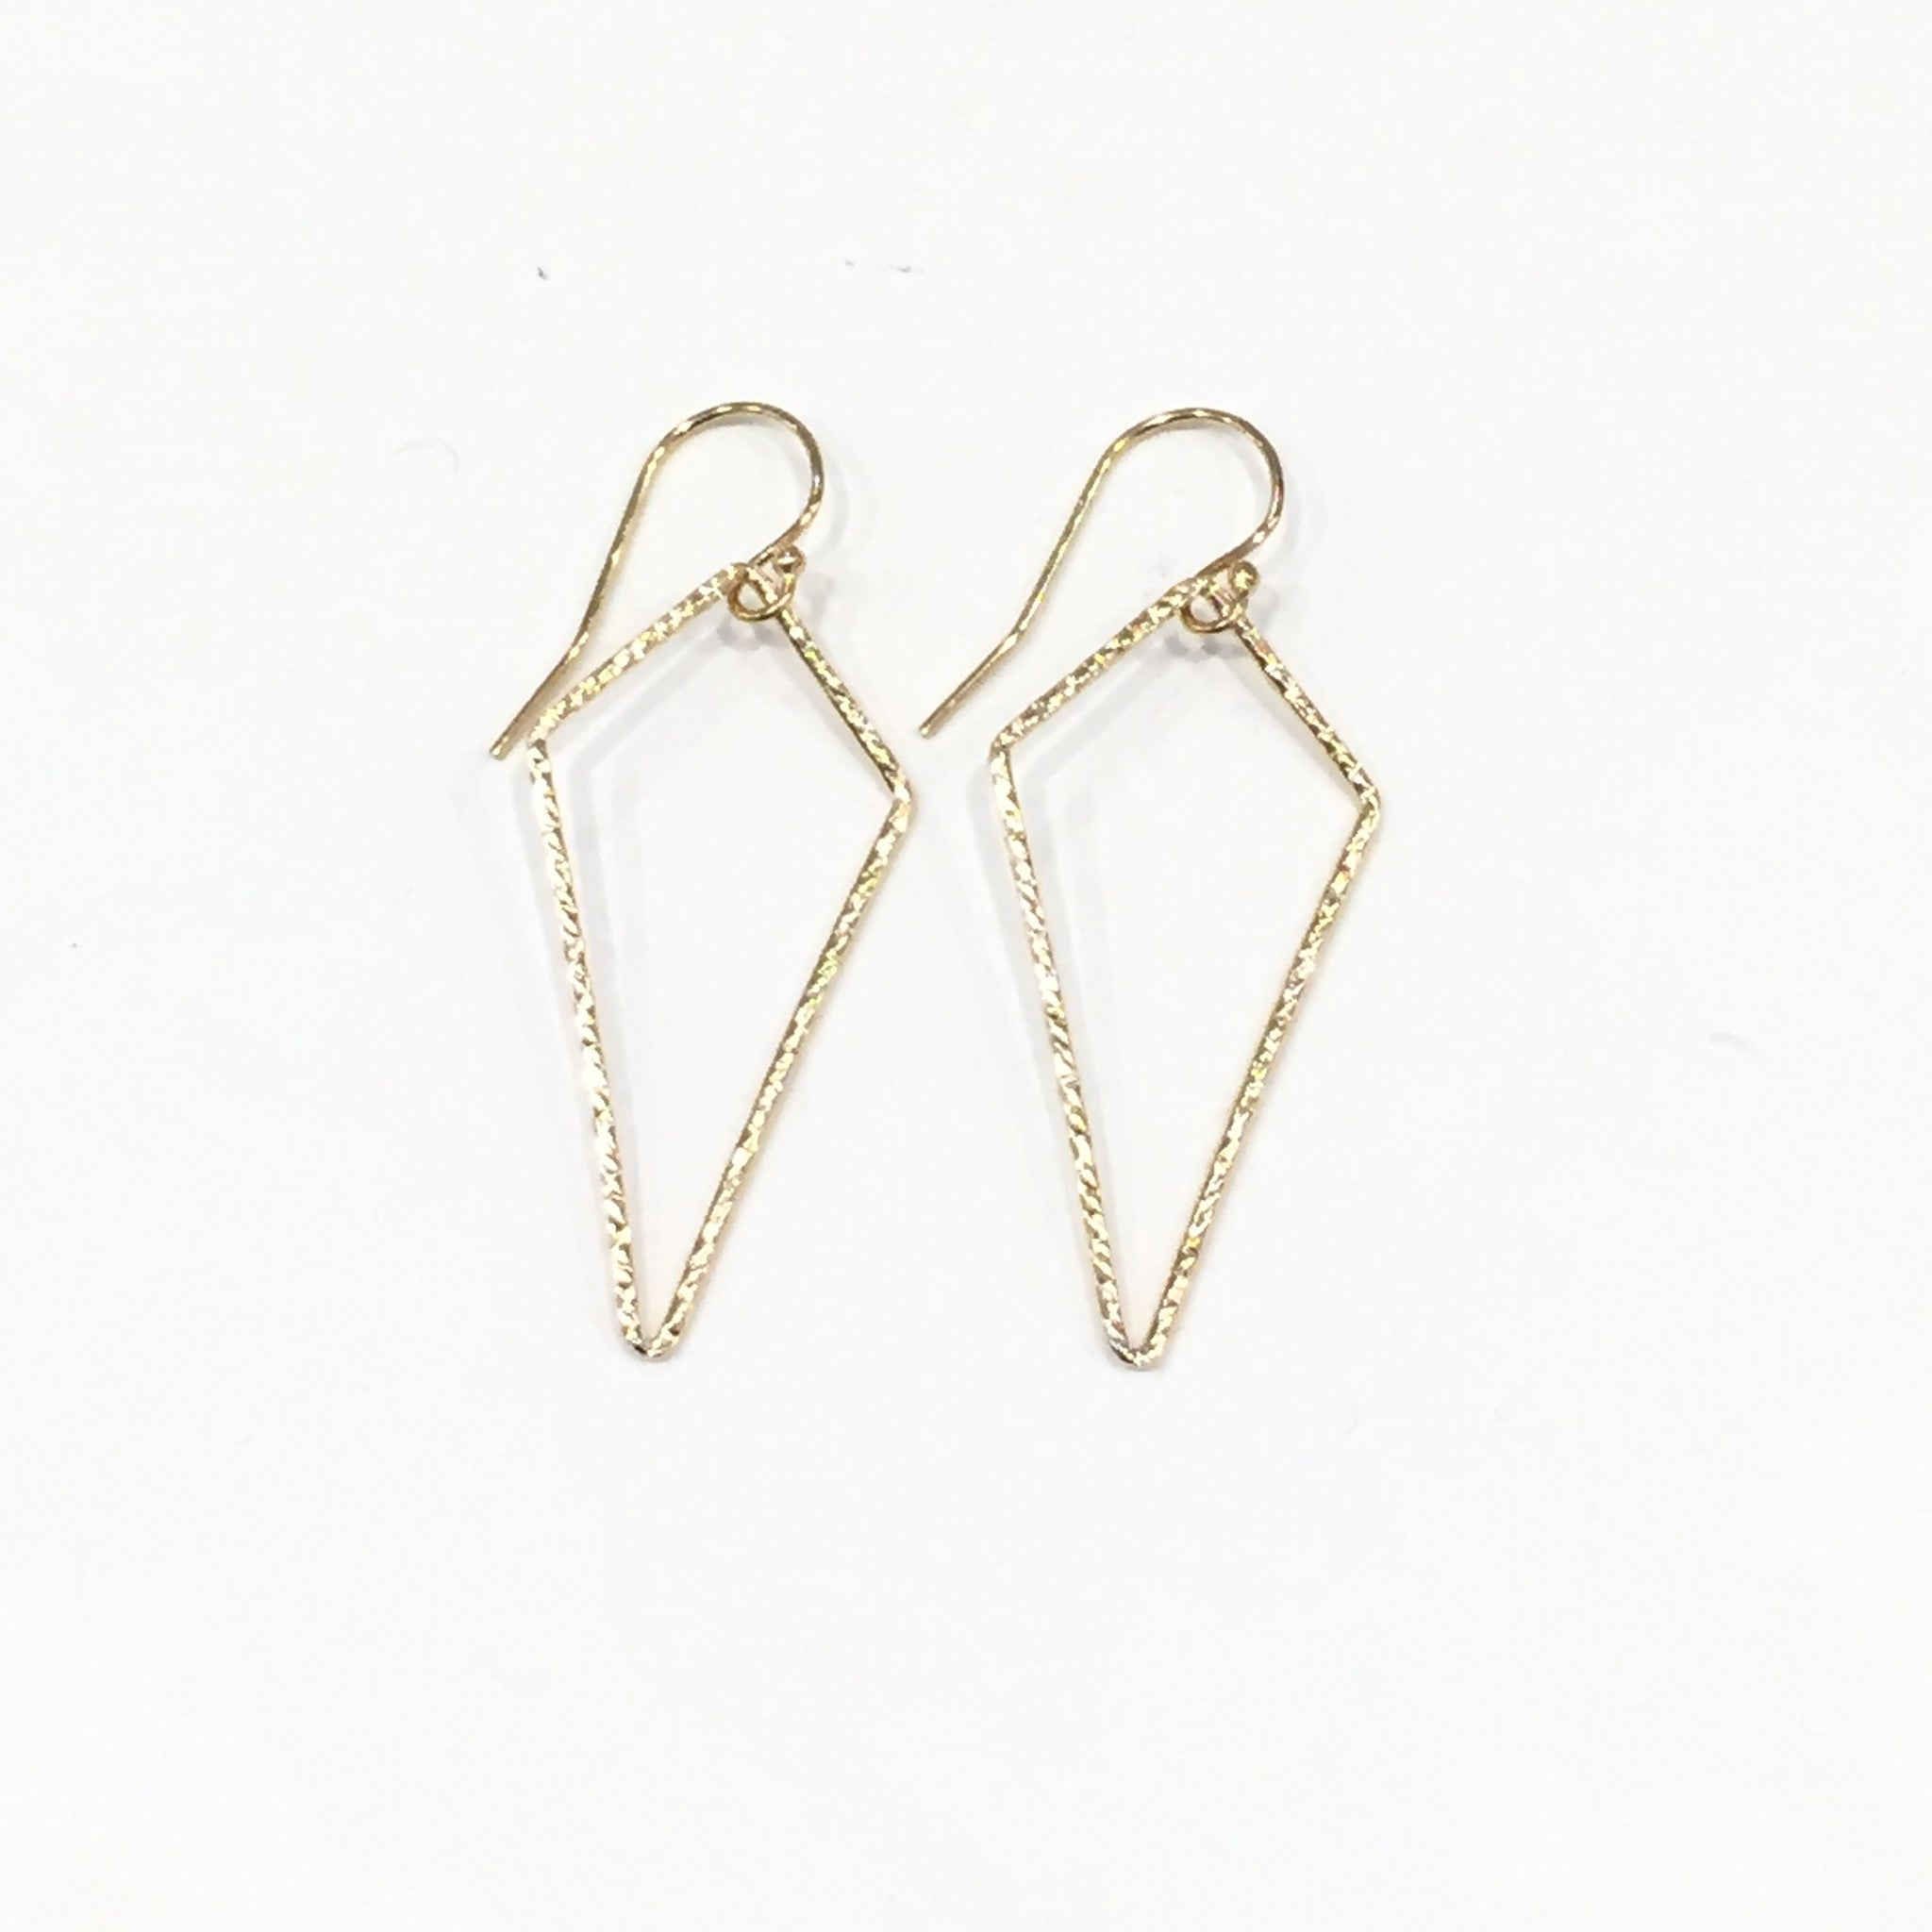 Kira Hawaii  - Prism Earrings, Jewelry